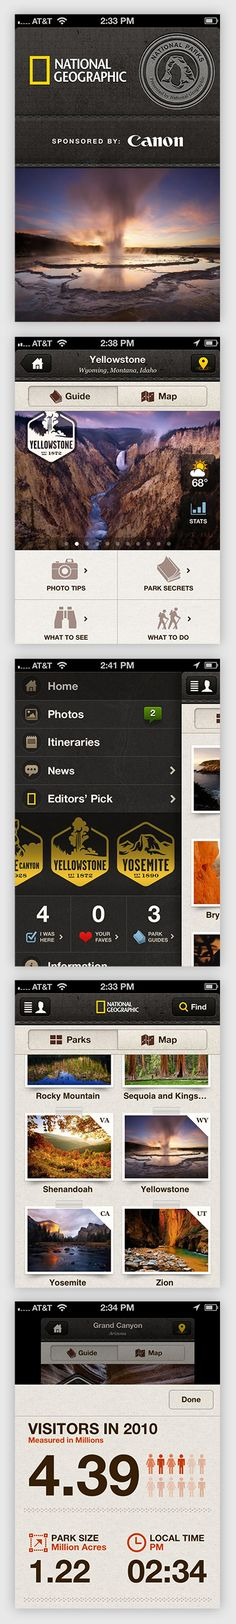 National Parks by National Geographic // iPhone App // Rally Interactive